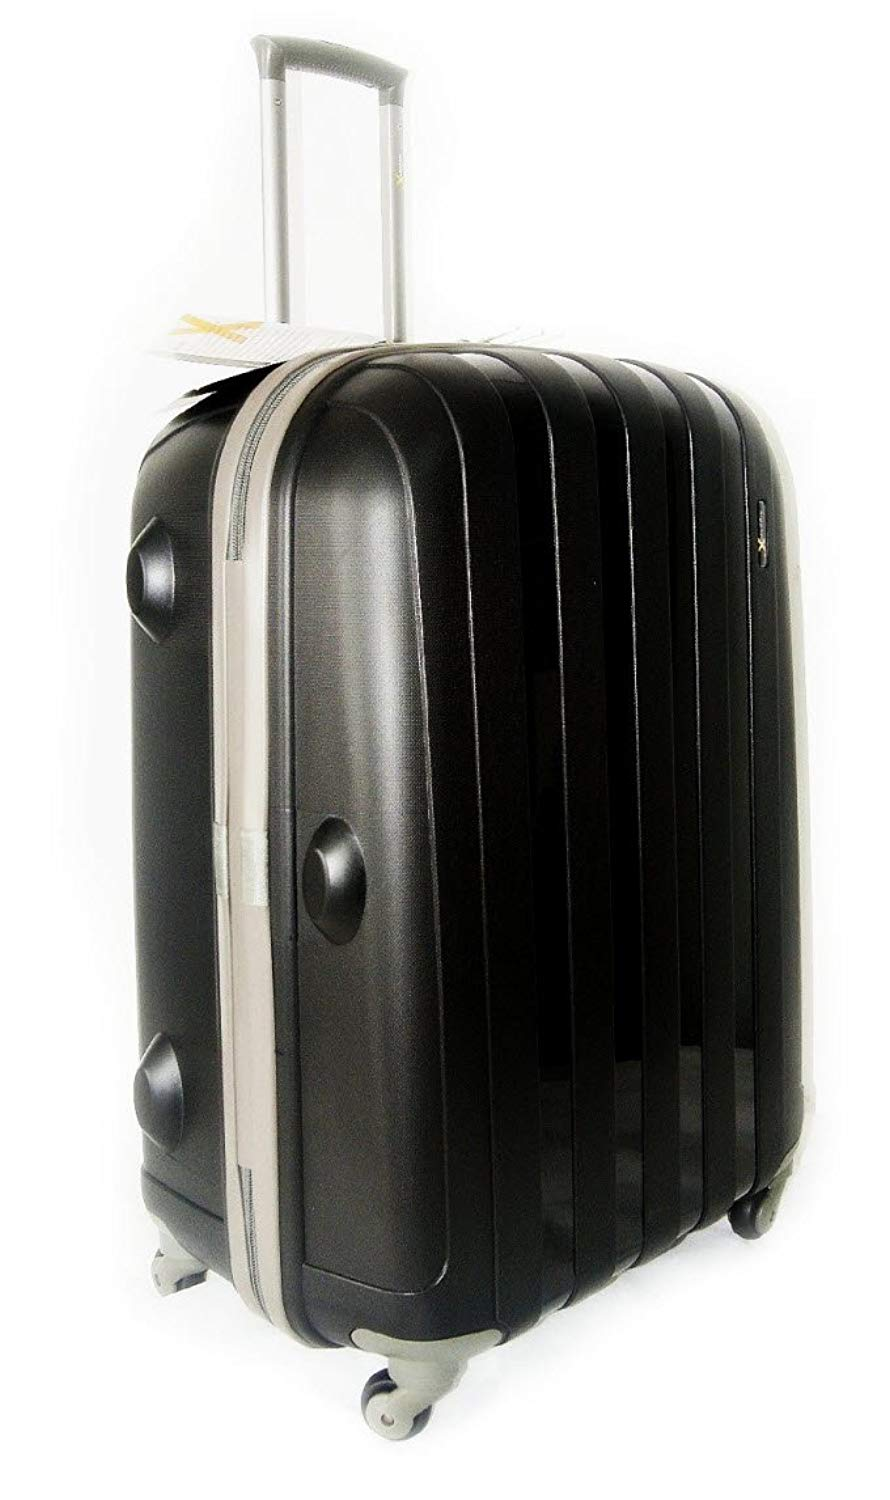 cbbb85745 Get Quotations · Luggage X - Set of 3 Lightweight Hard Shell Black Trolley  Suitcases 30